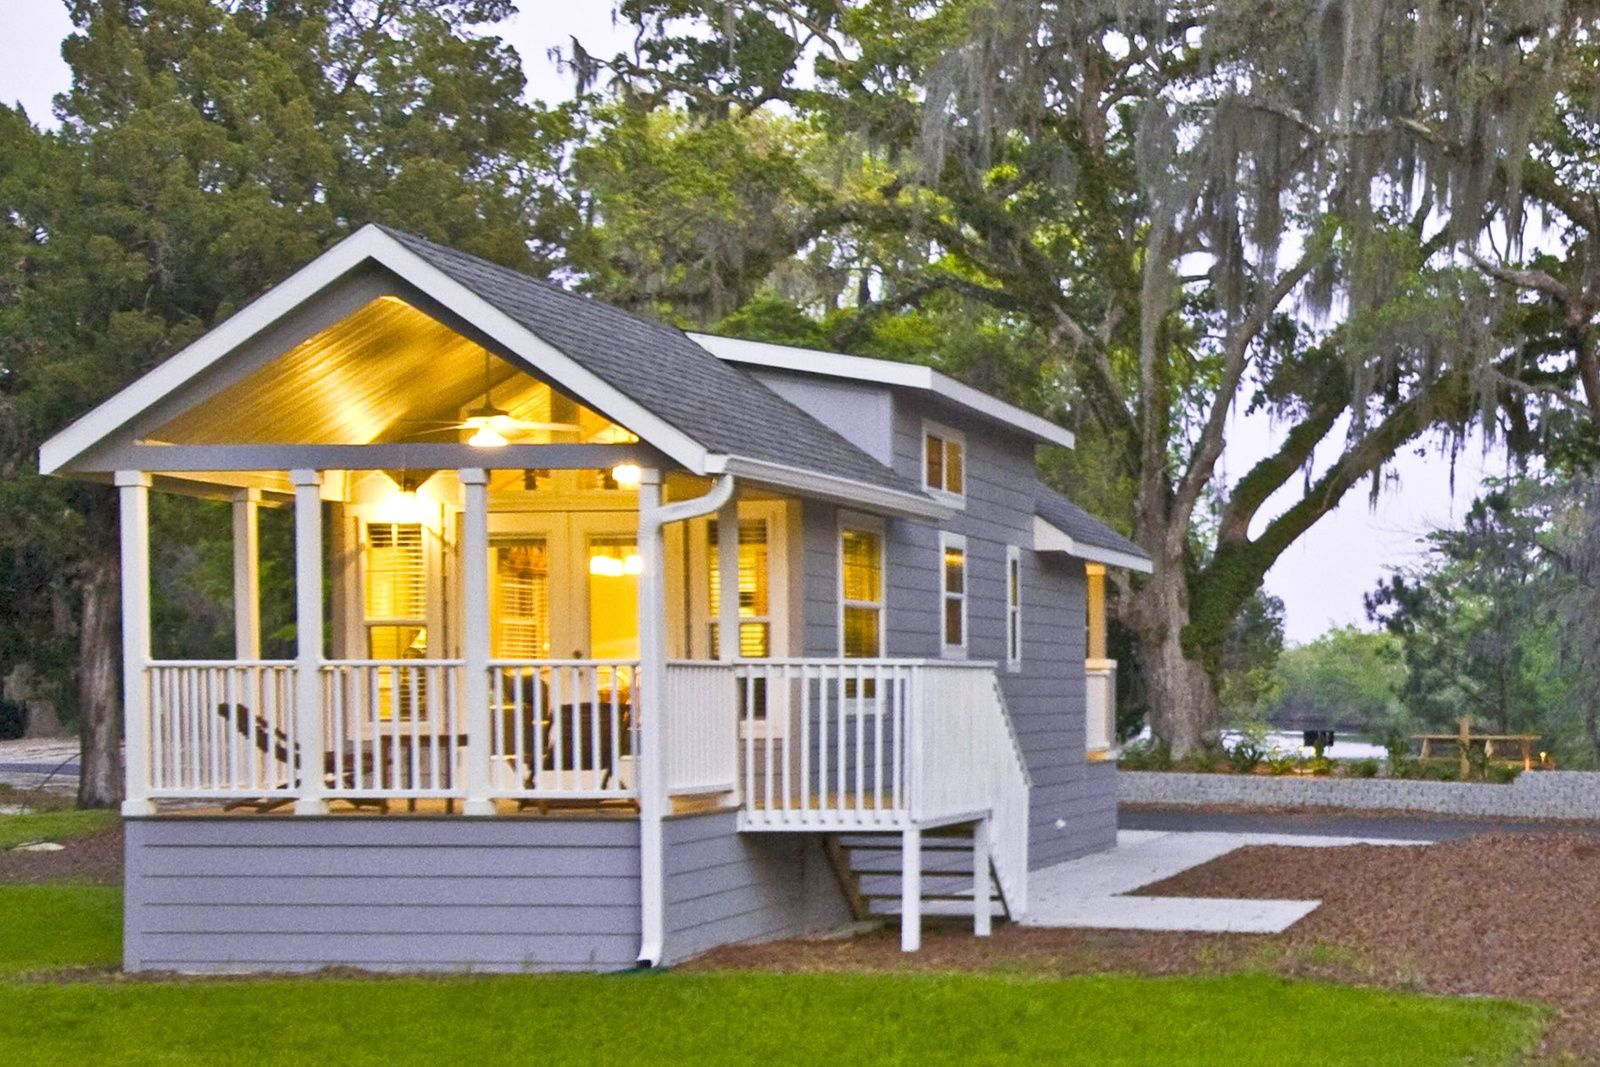 Experience the country in style with our park model rvs